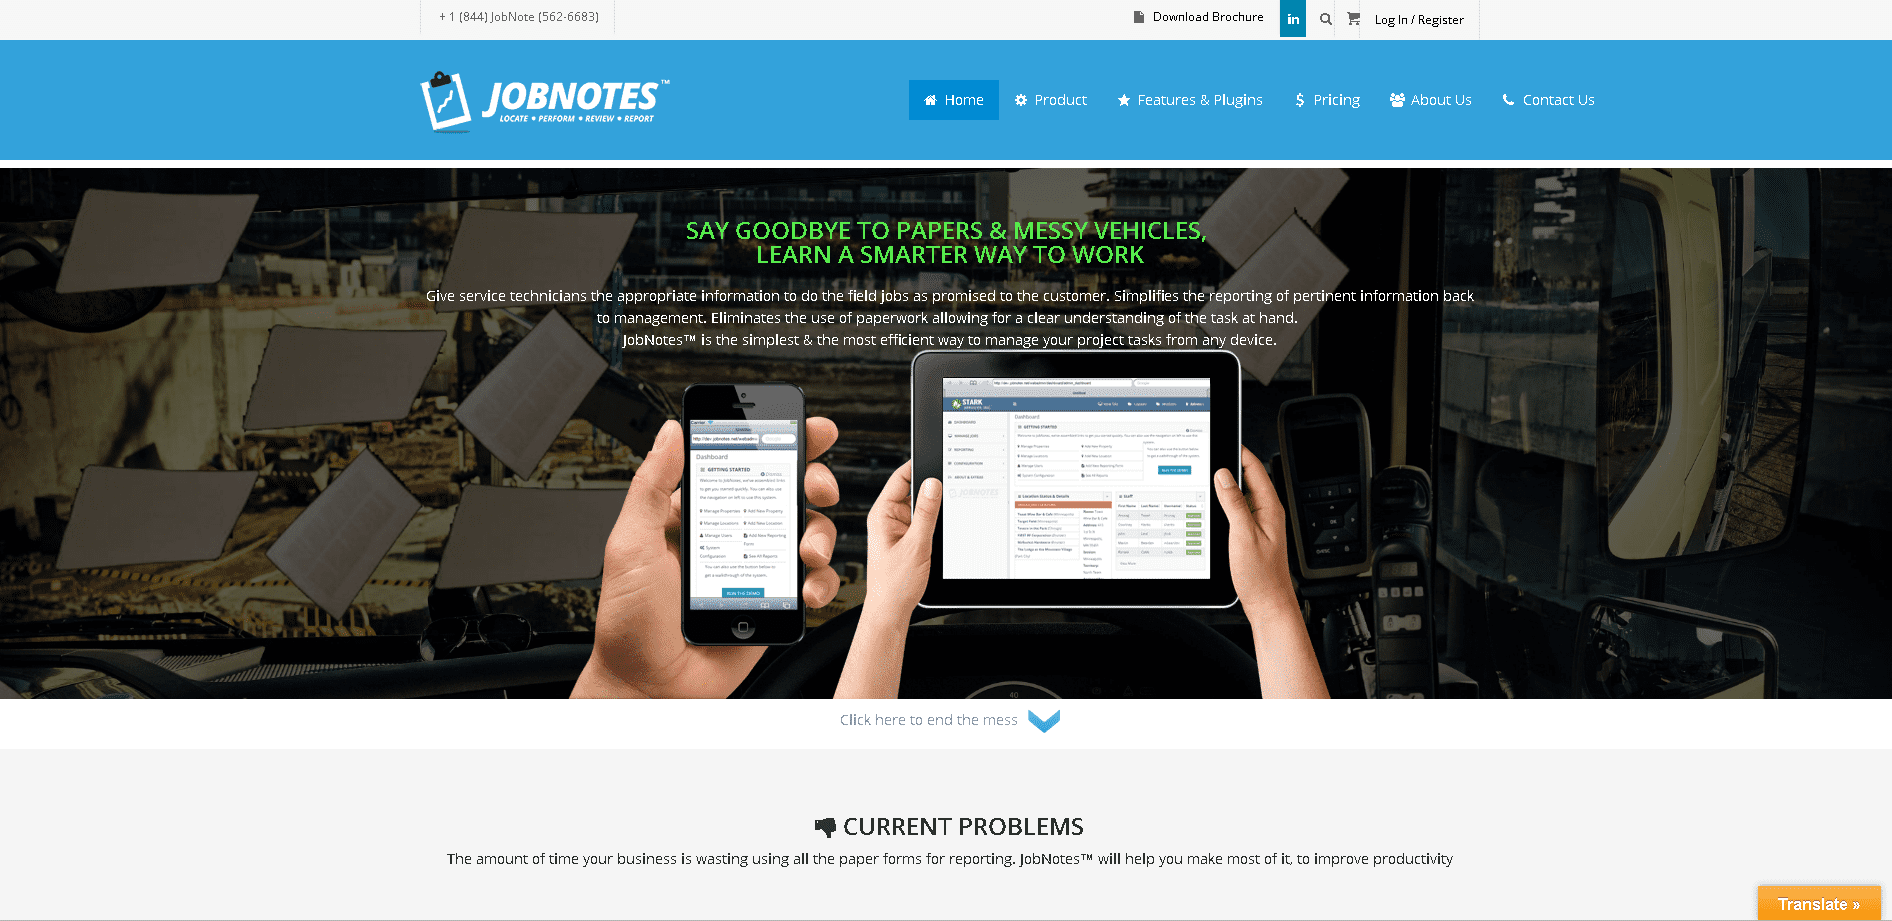 jobnotes website